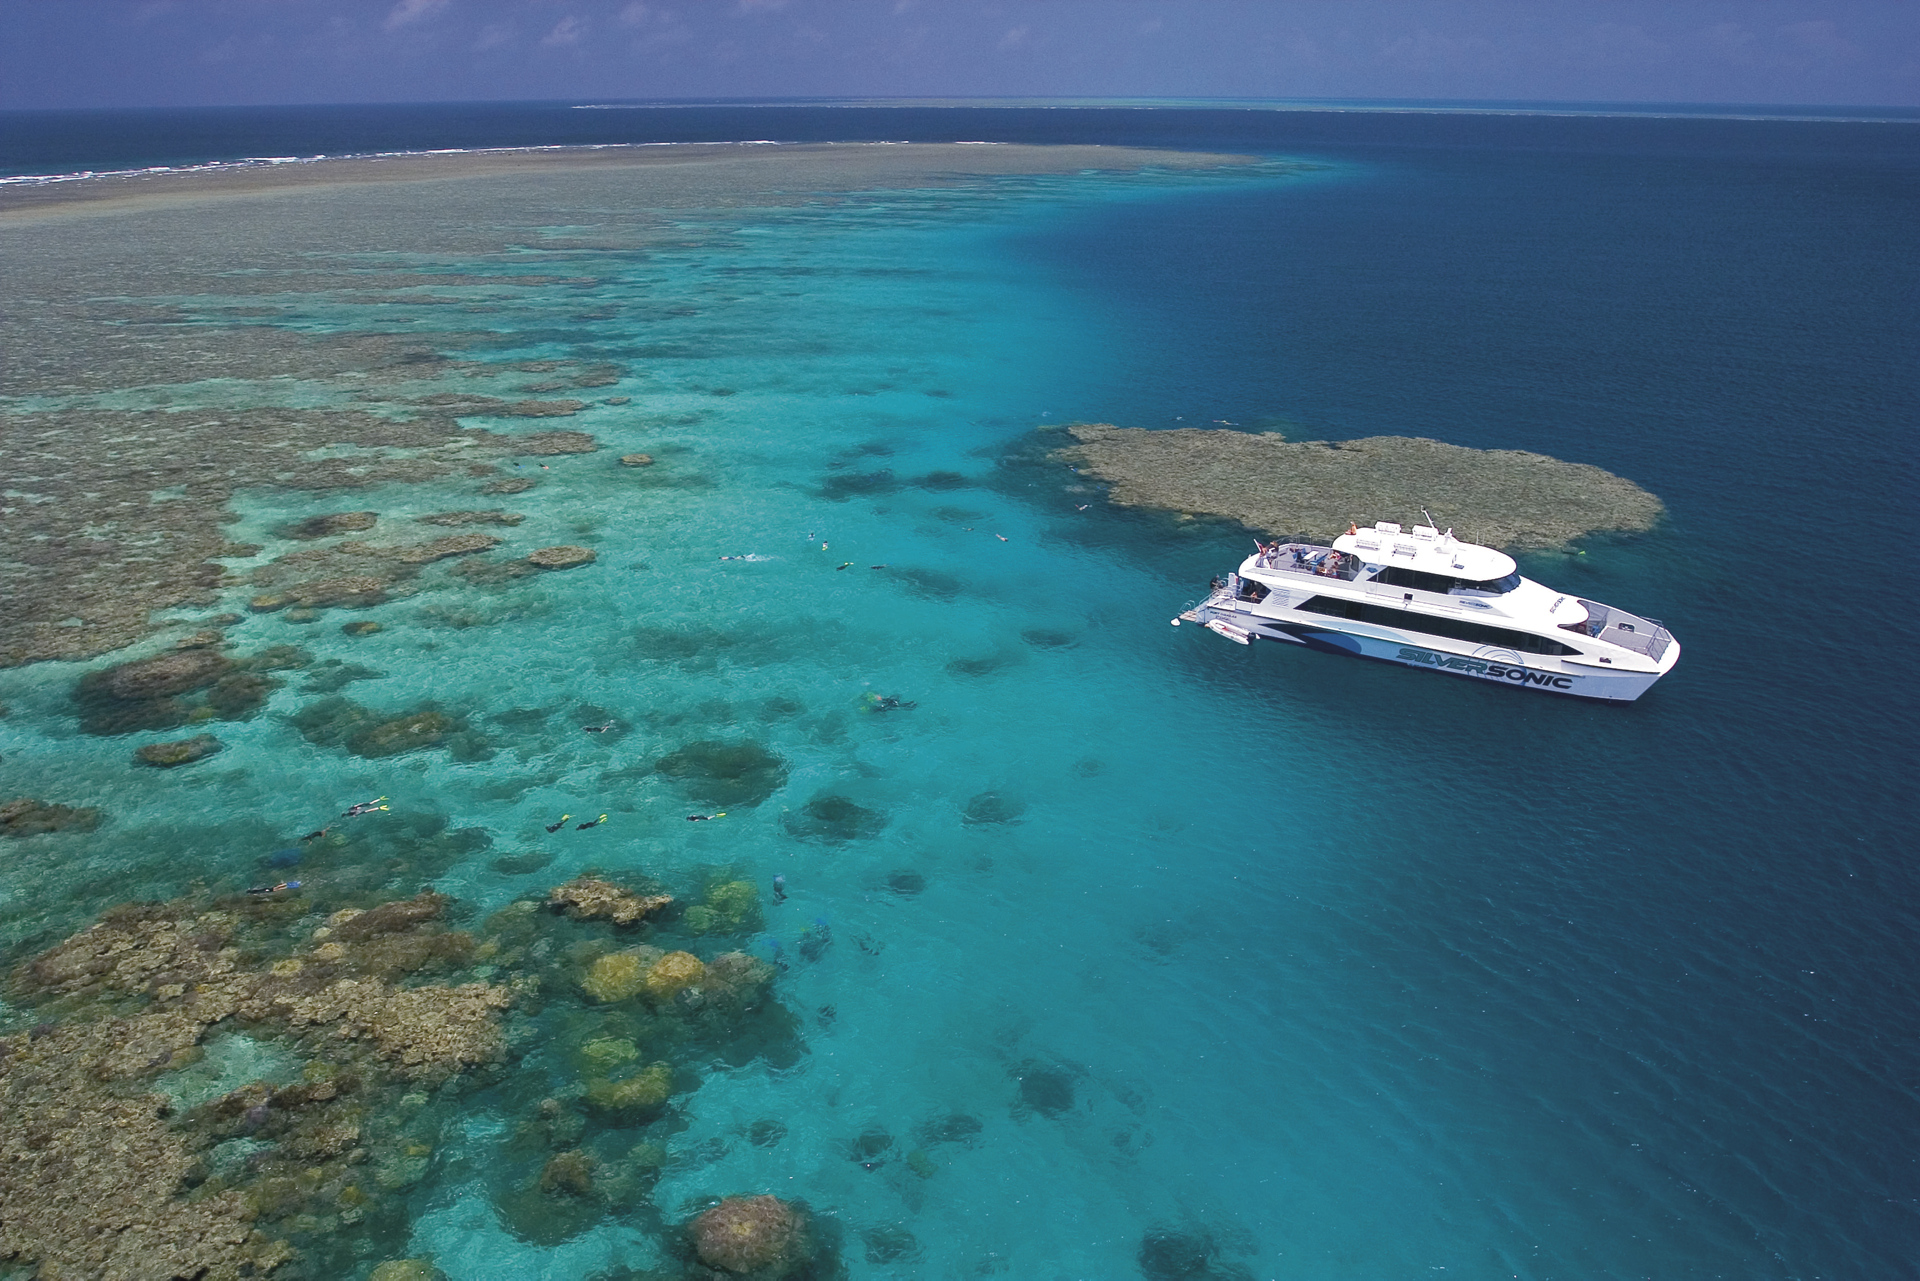 Silversonic am Great Barrier Reef ©Gavin Hardy